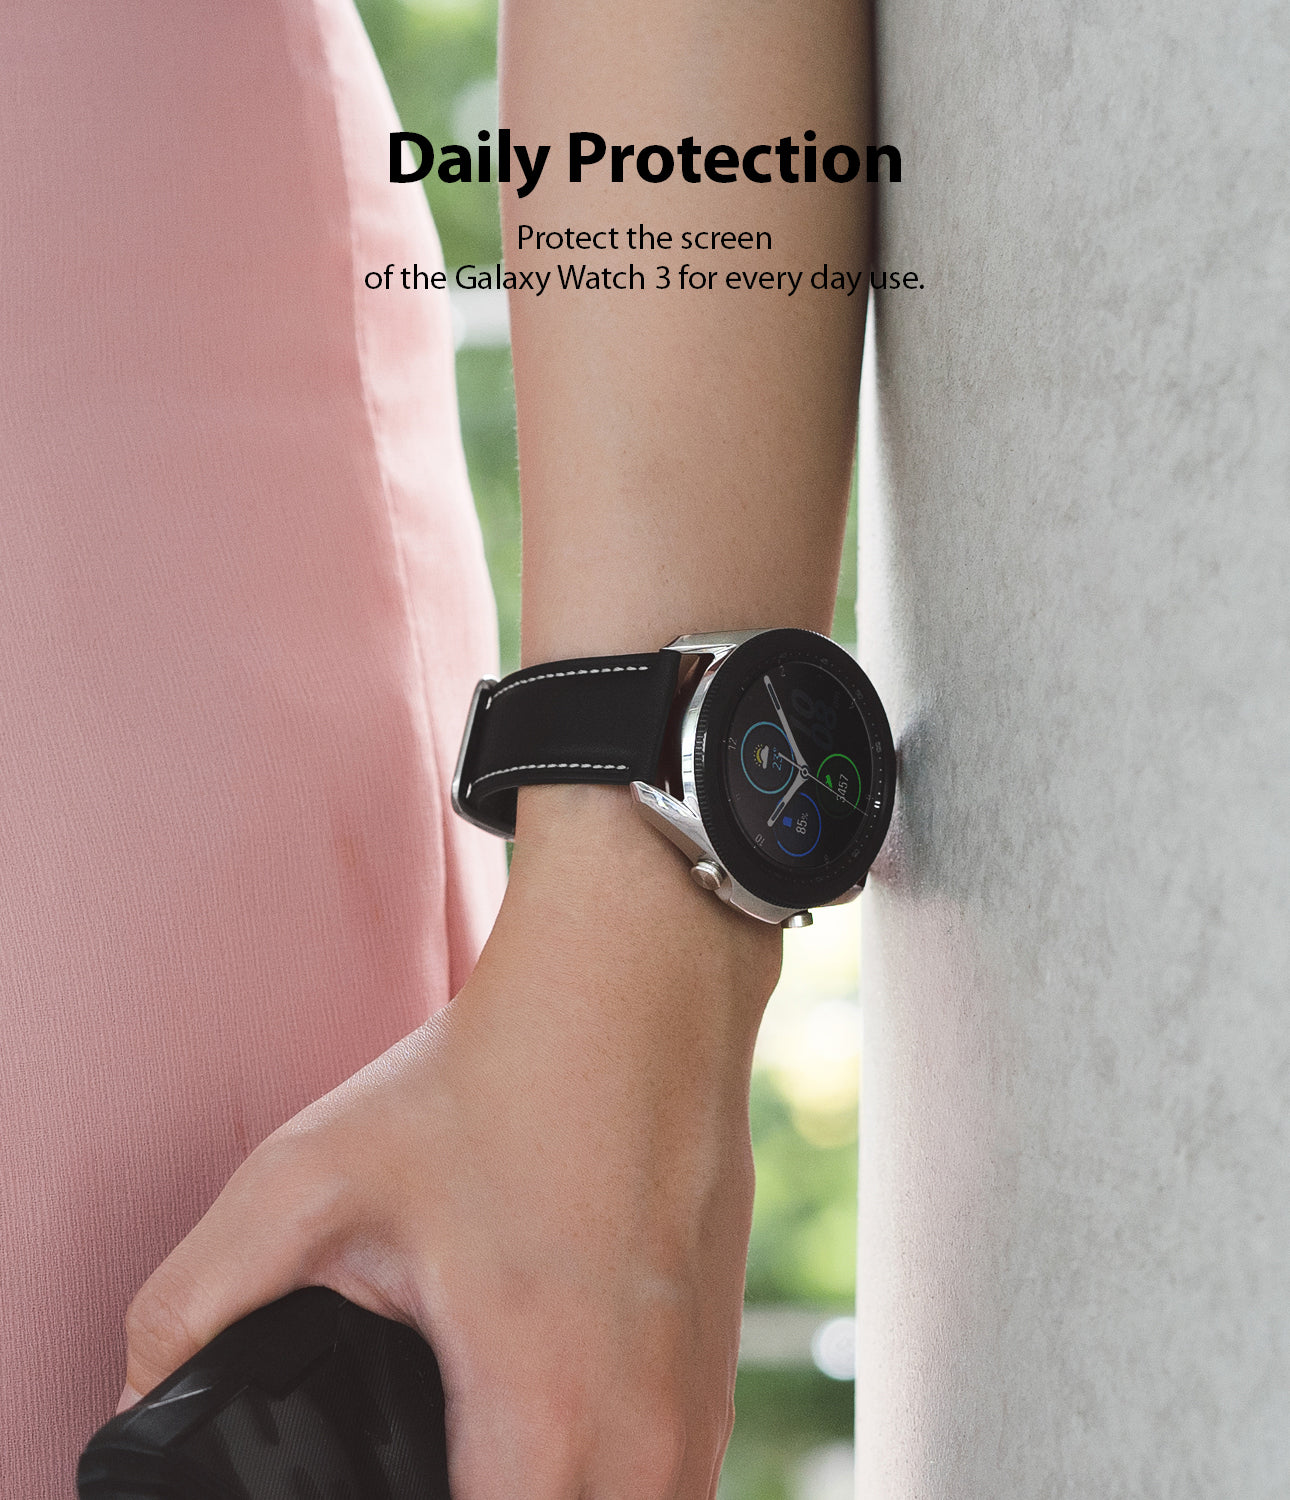 protect the screen of the galaxy watch 3 for everyday use